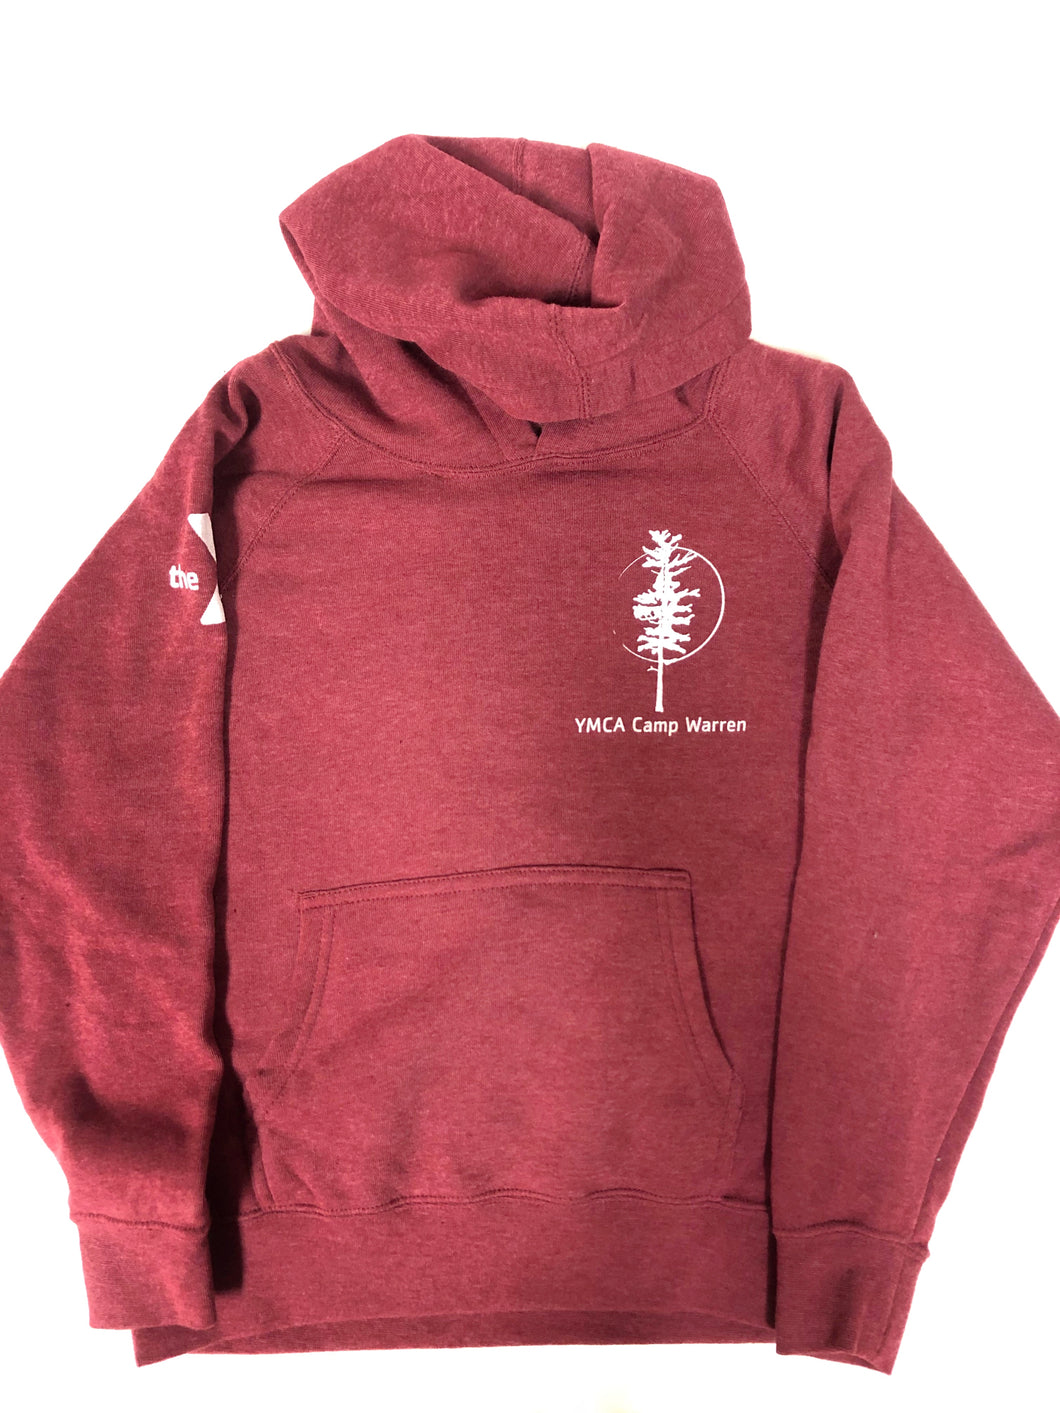 Youth Red Hooded Sweatshirt